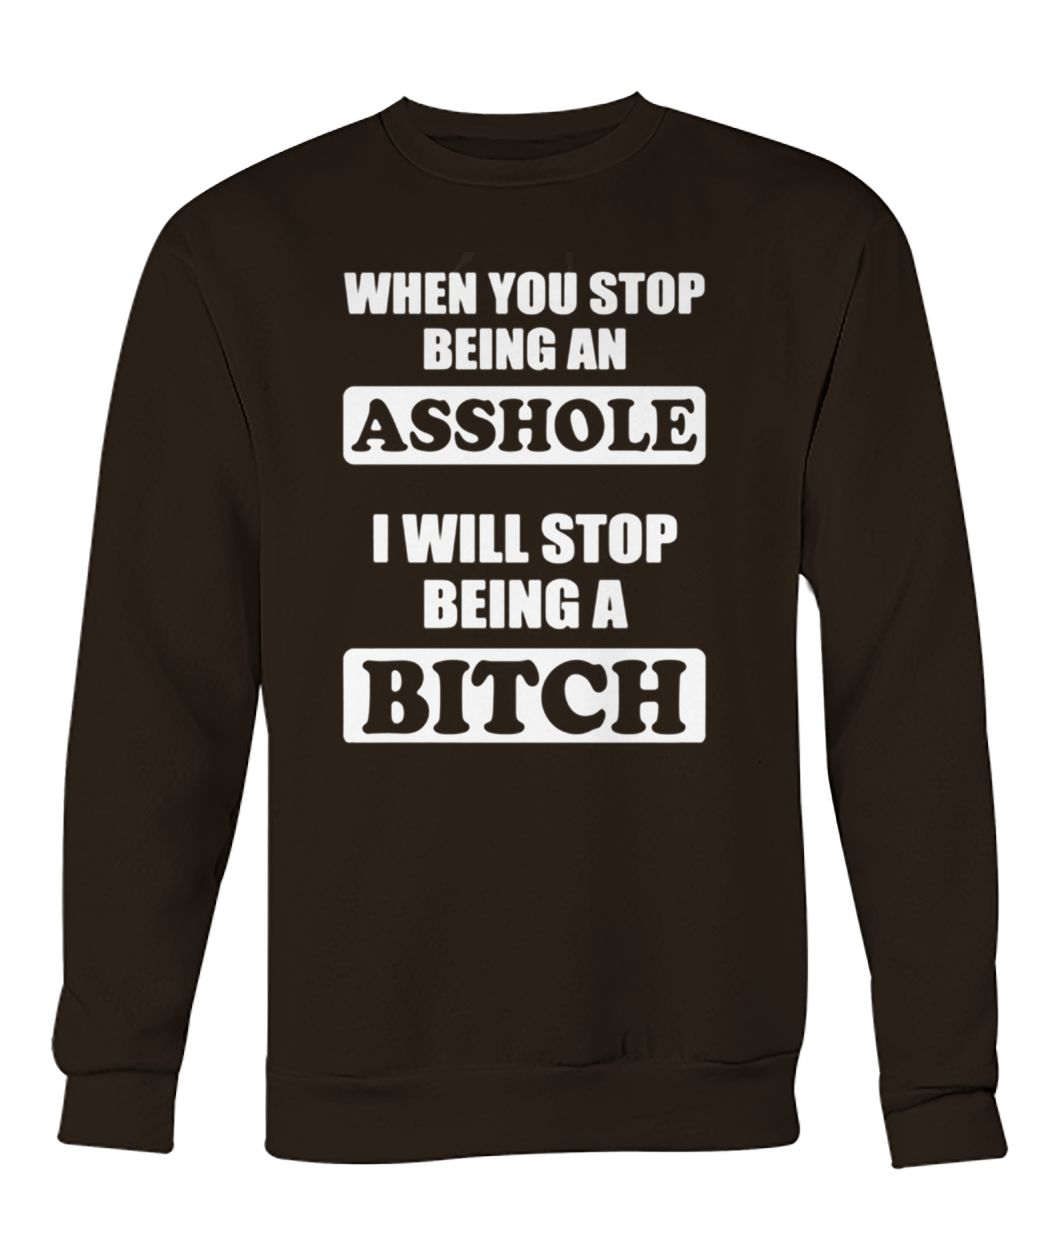 When you stop being an asshole I will stop being bitch crew neck sweatshirt